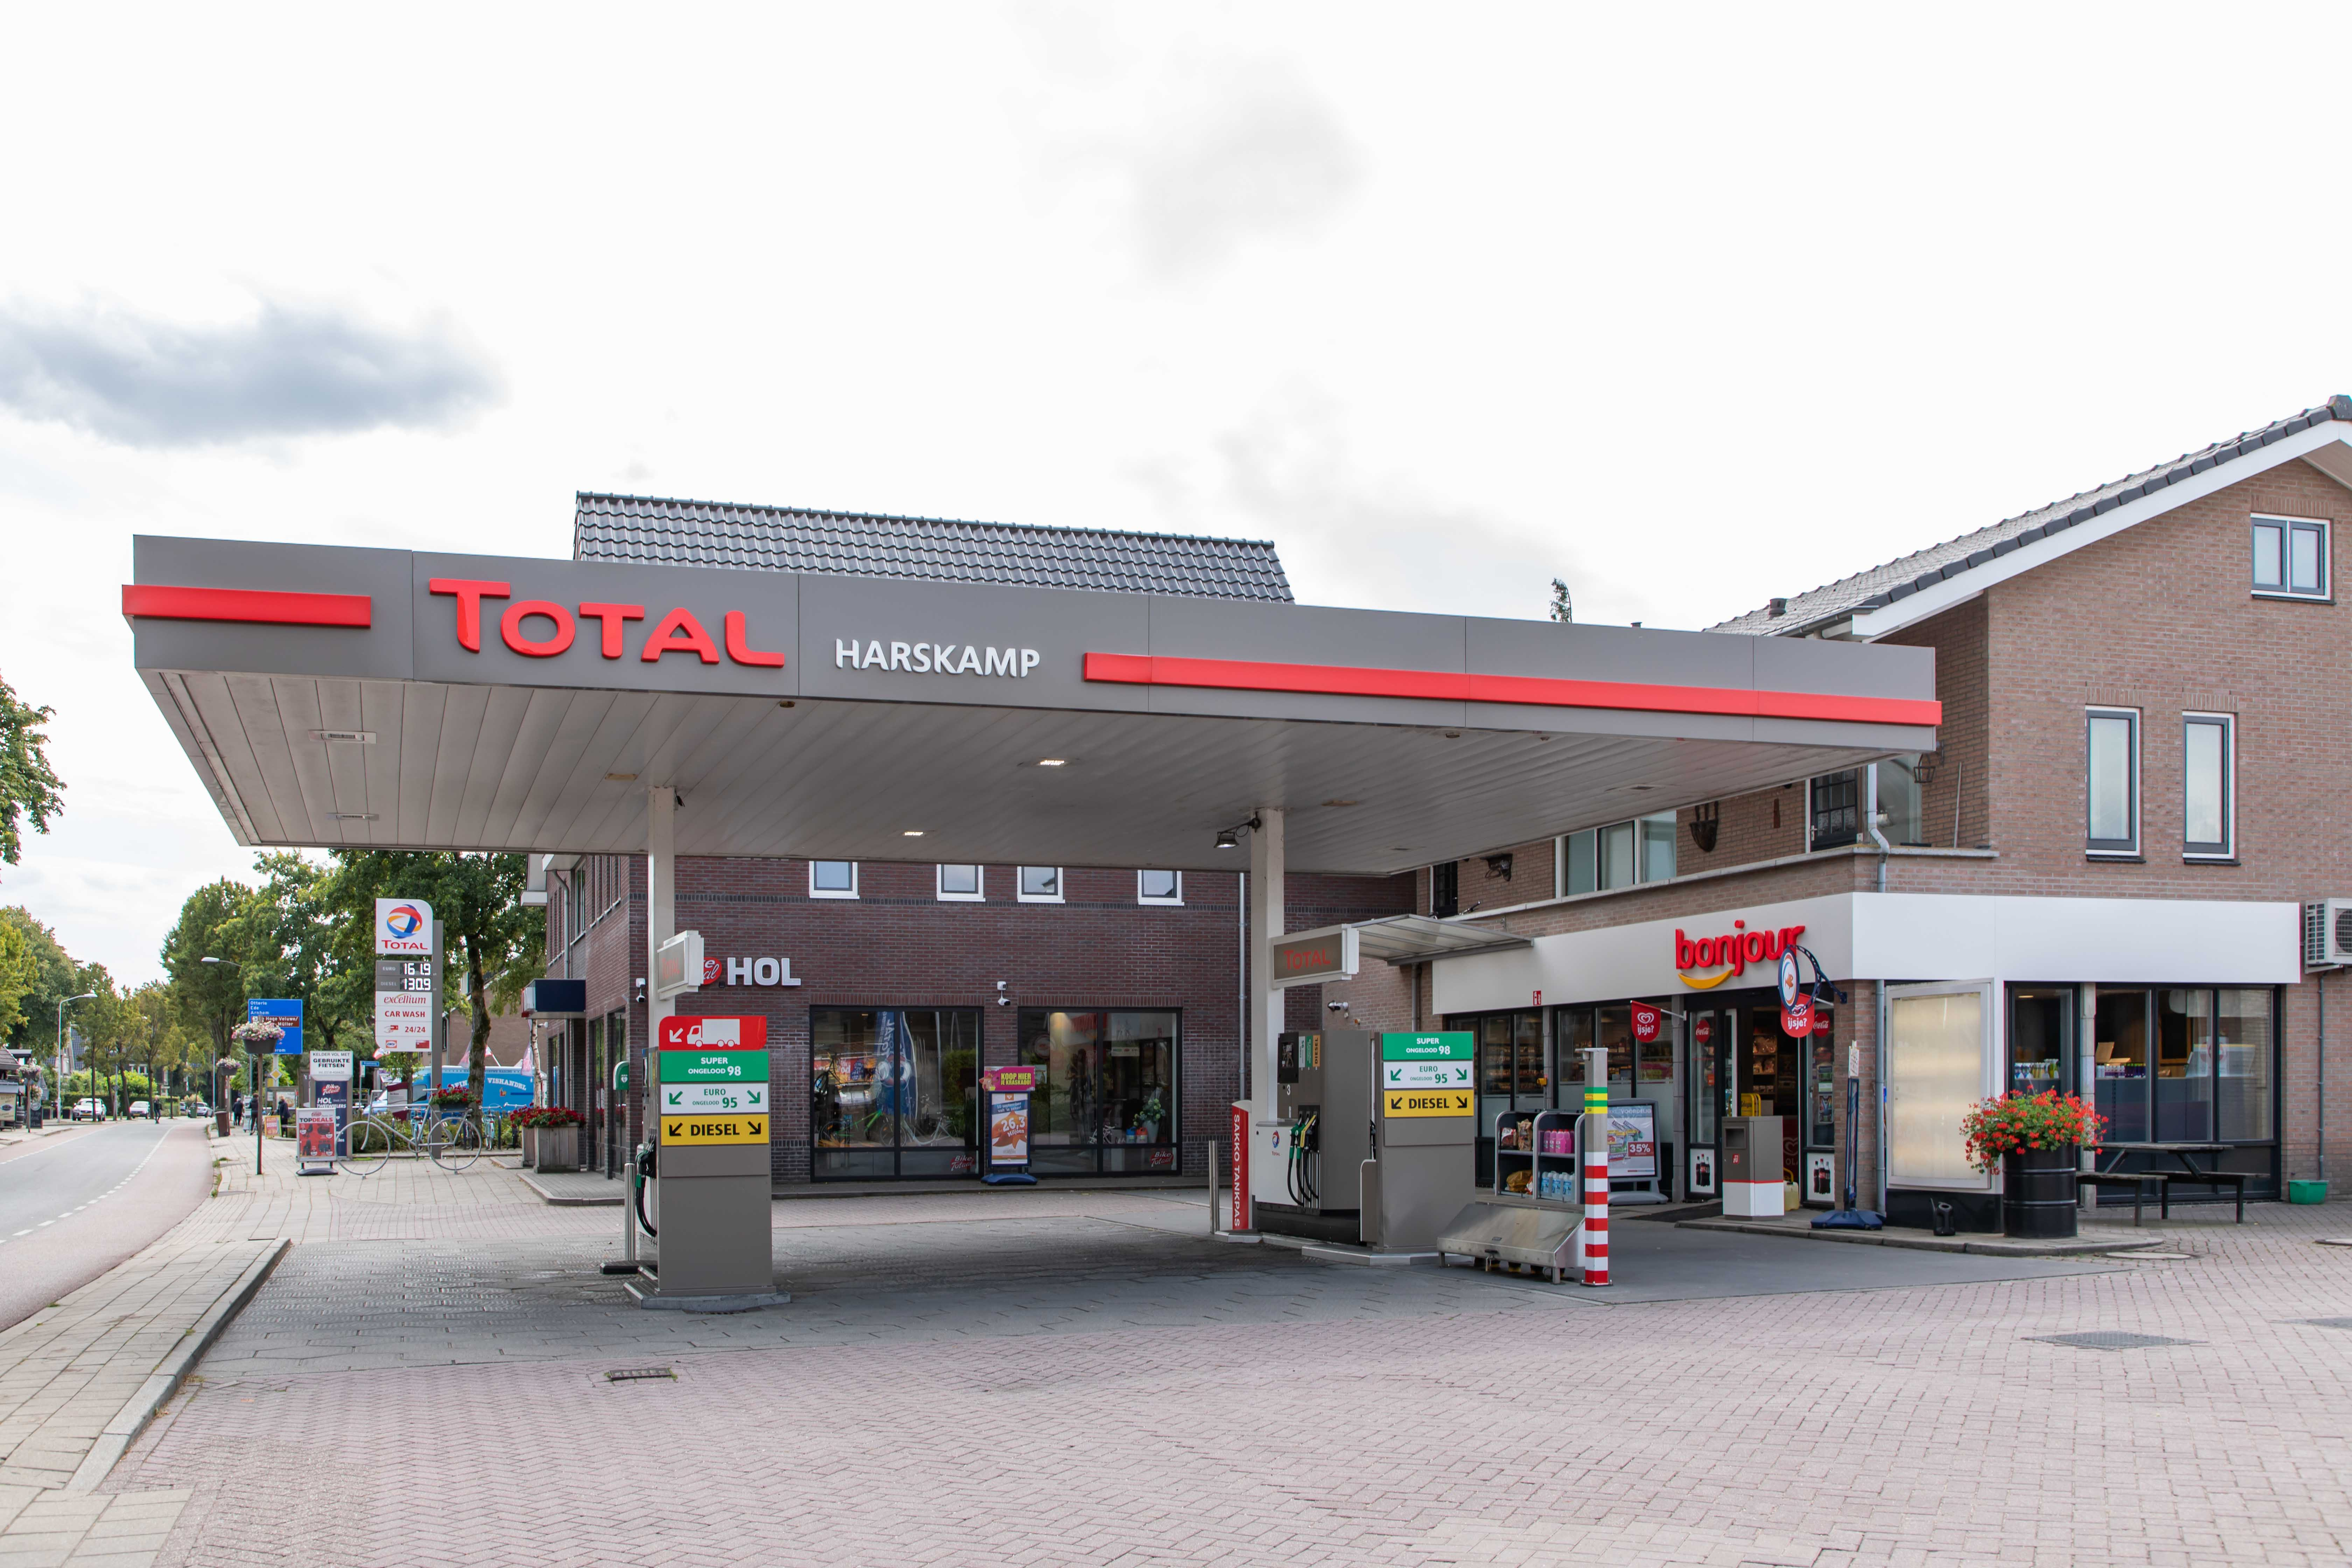 Total Shop – Harskamp